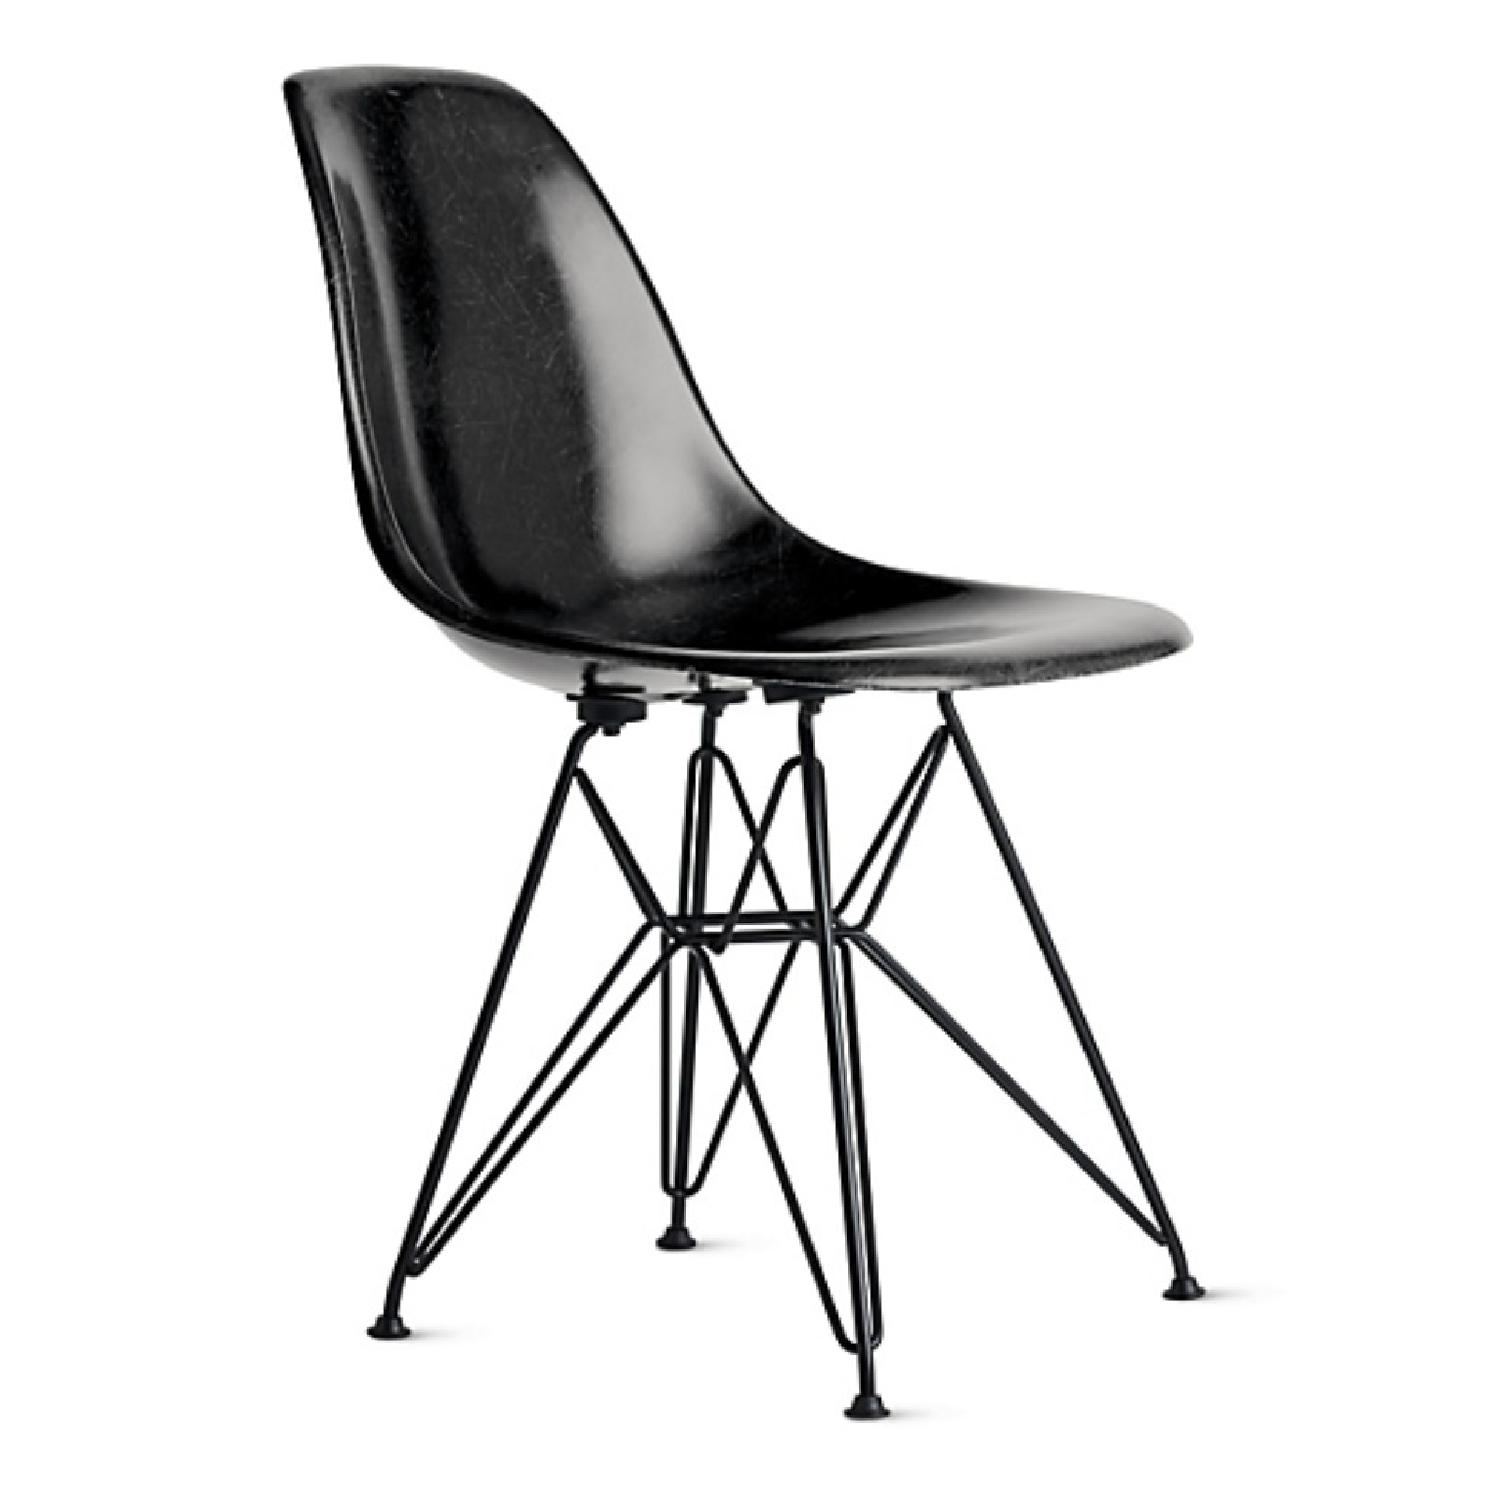 Eames Molded Fiberglass Wire-Base Side Chair in Navy - image-2